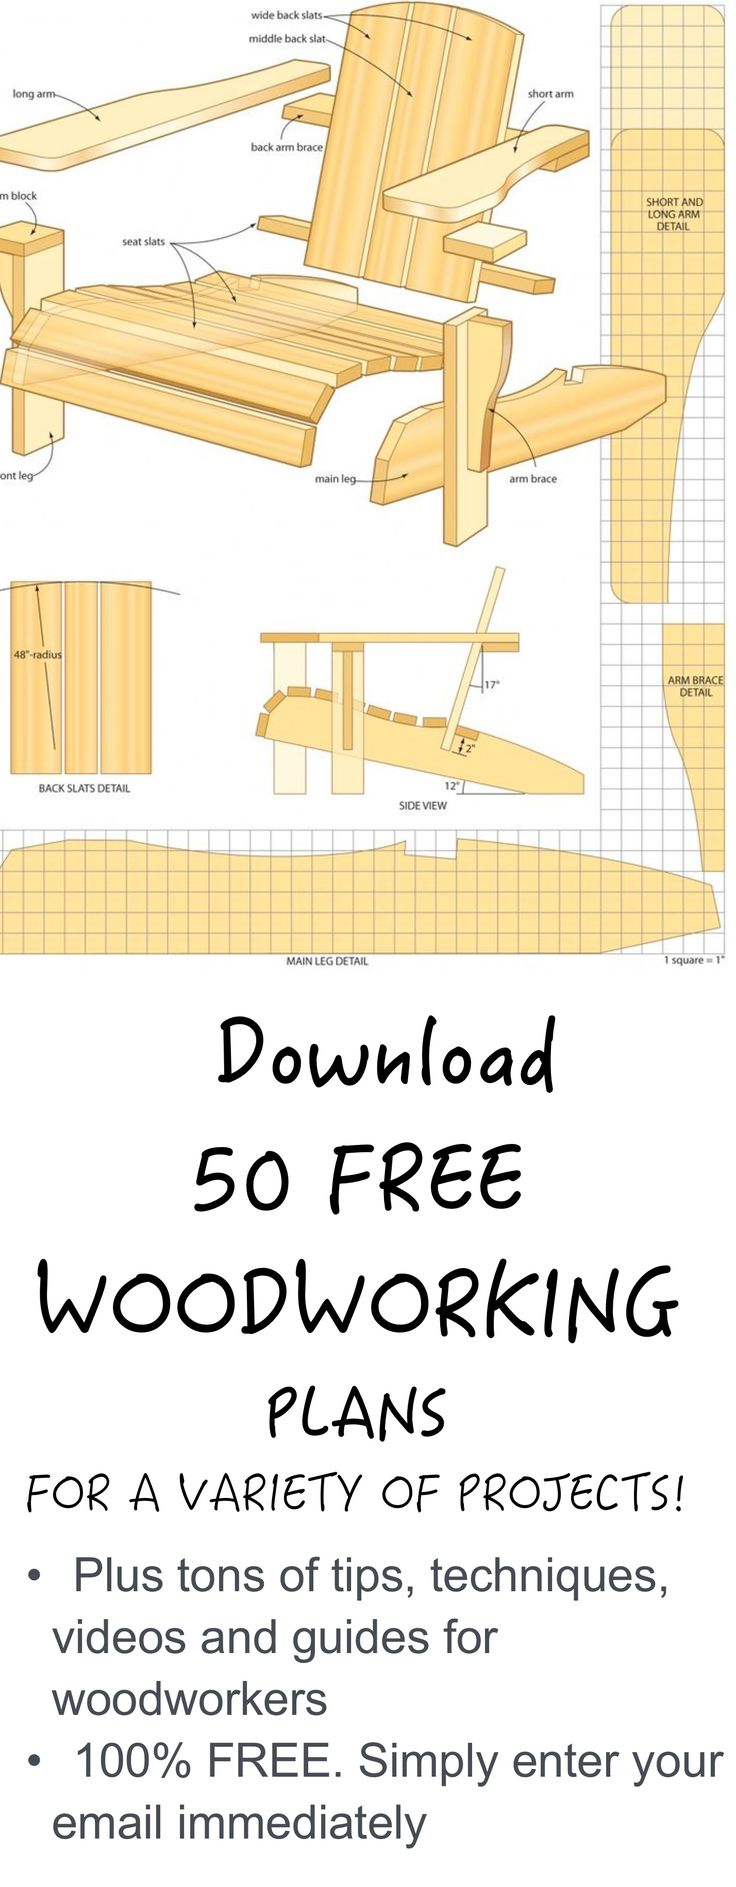 Download free woodworking plans. Just enter your email to download immediately.